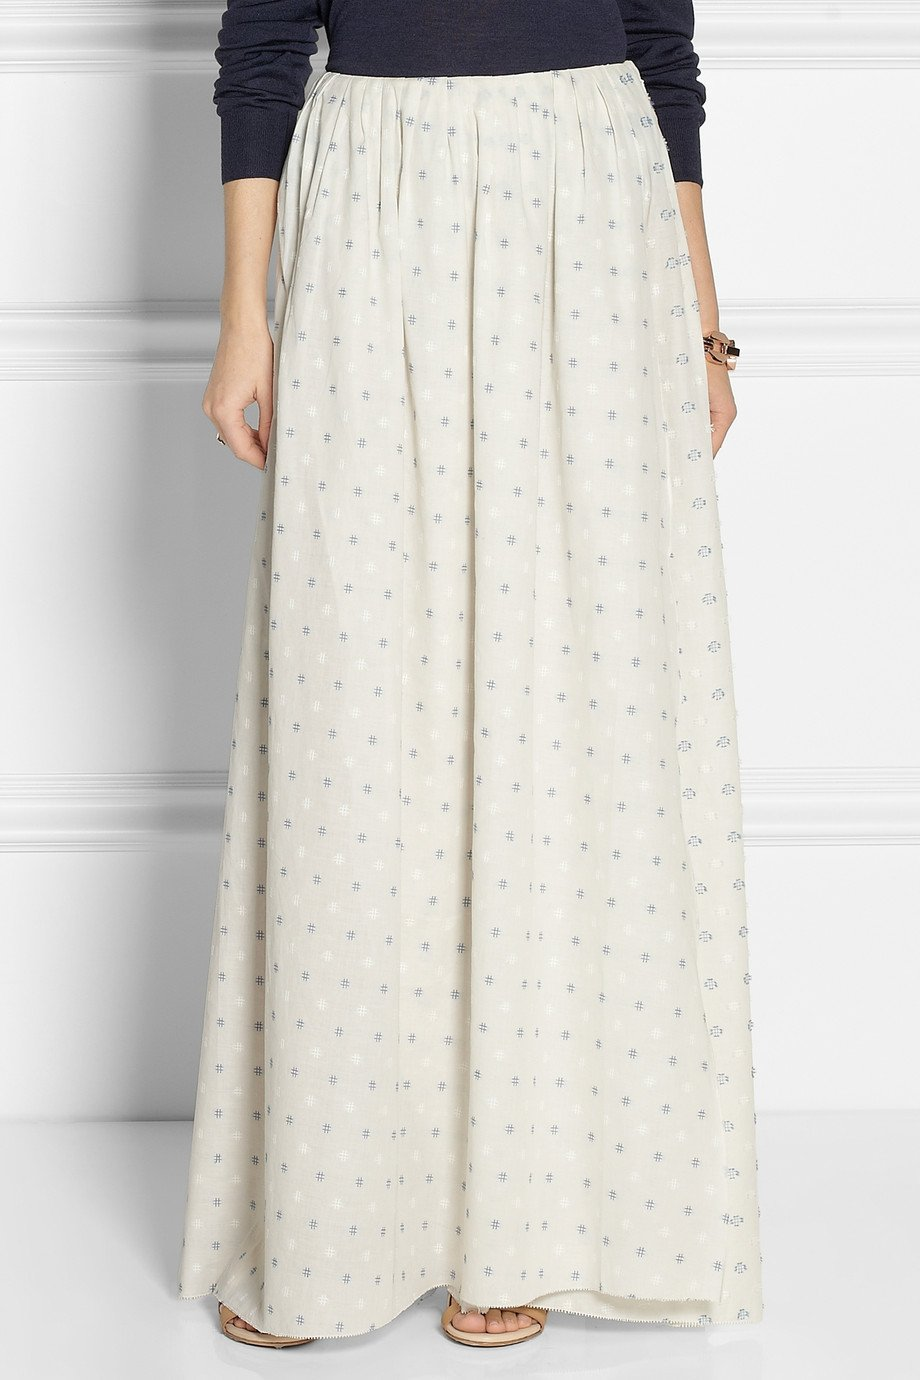 Band of outsiders Wrap Effect Embroidered Cotton Maxi Skirt in ...